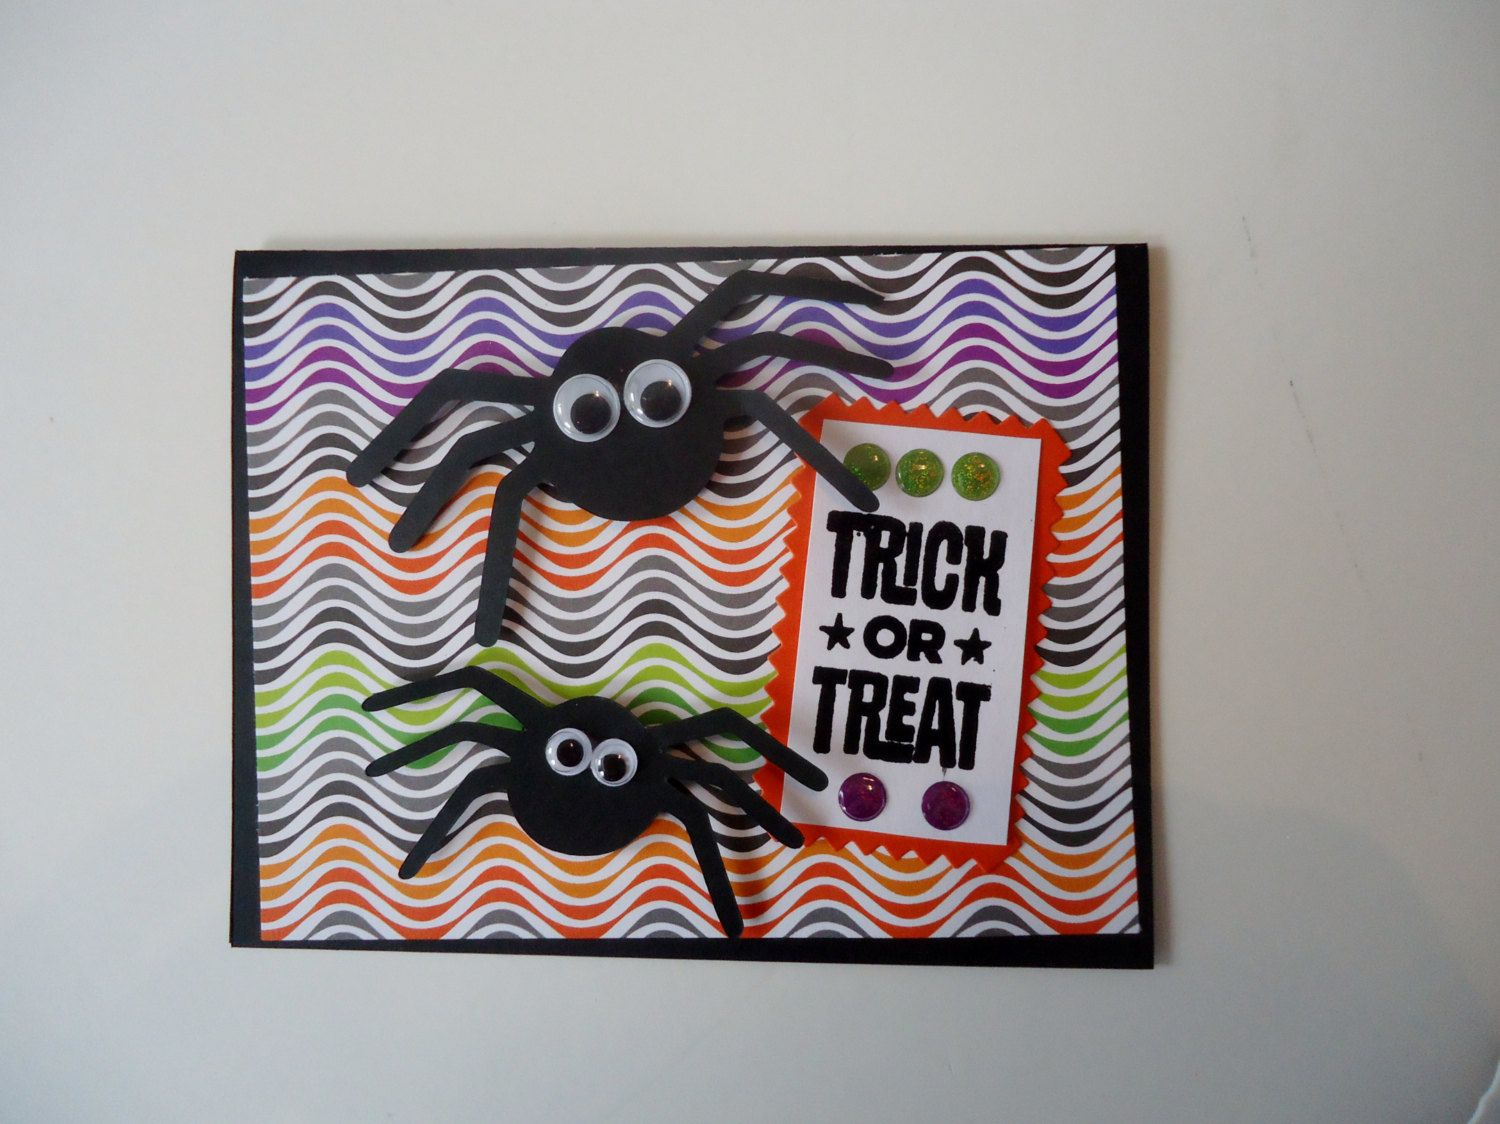 Trick or treat spooky spider halloween card handmade greeting trick or treat spooky spider halloween card handmade greeting card funny m4hsunfo Choice Image